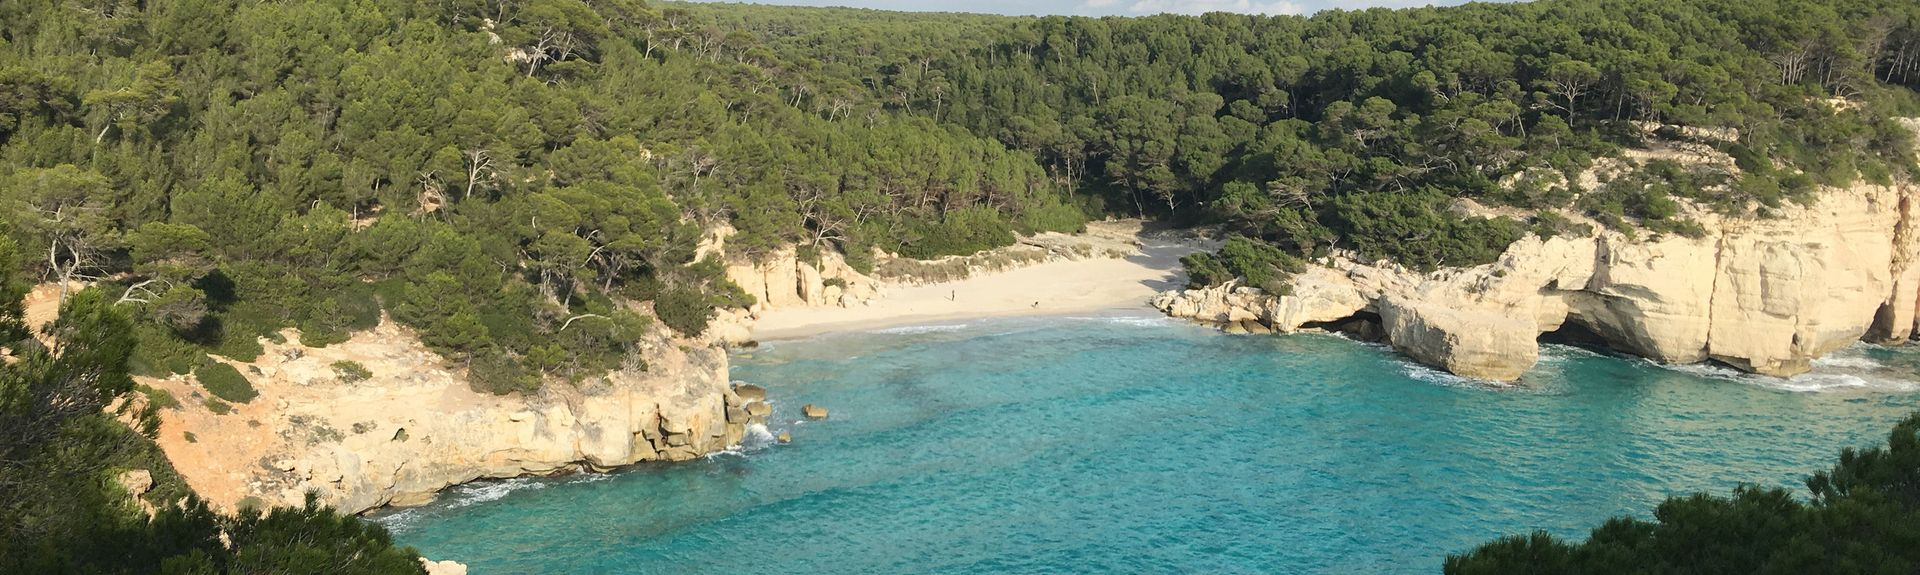 Cala Mitjana Beach, Ferreries, Balearic Islands, Spain